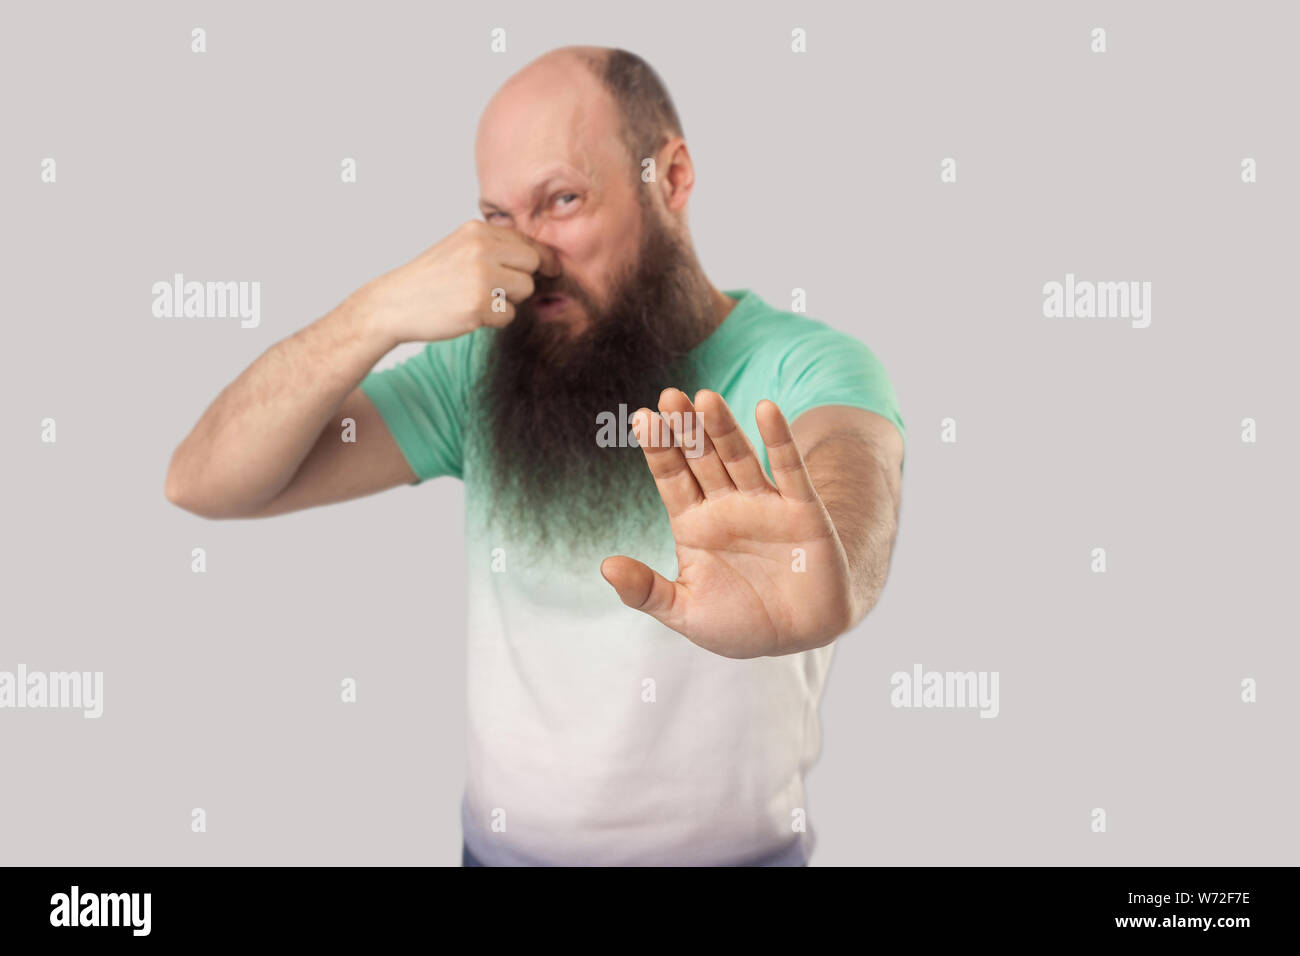 Bad smell, stop. Portrait of confused middle aged bald man with long beard in light green t-shirt standing, blocking his nose and showing stop gesture Stock Photo